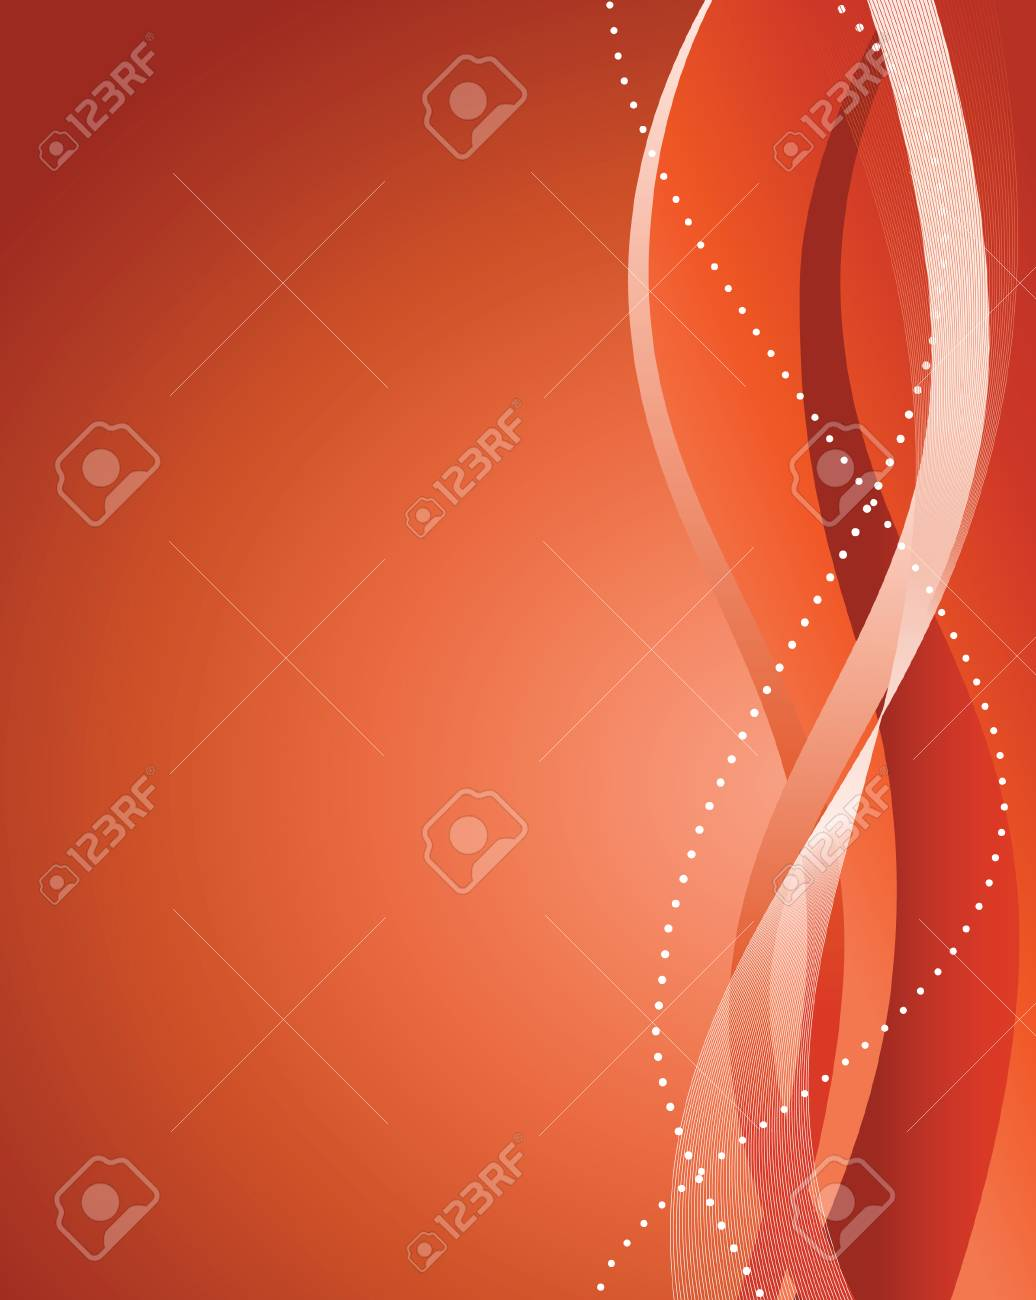 Abstract red background. illustration Stock Vector - 6829184